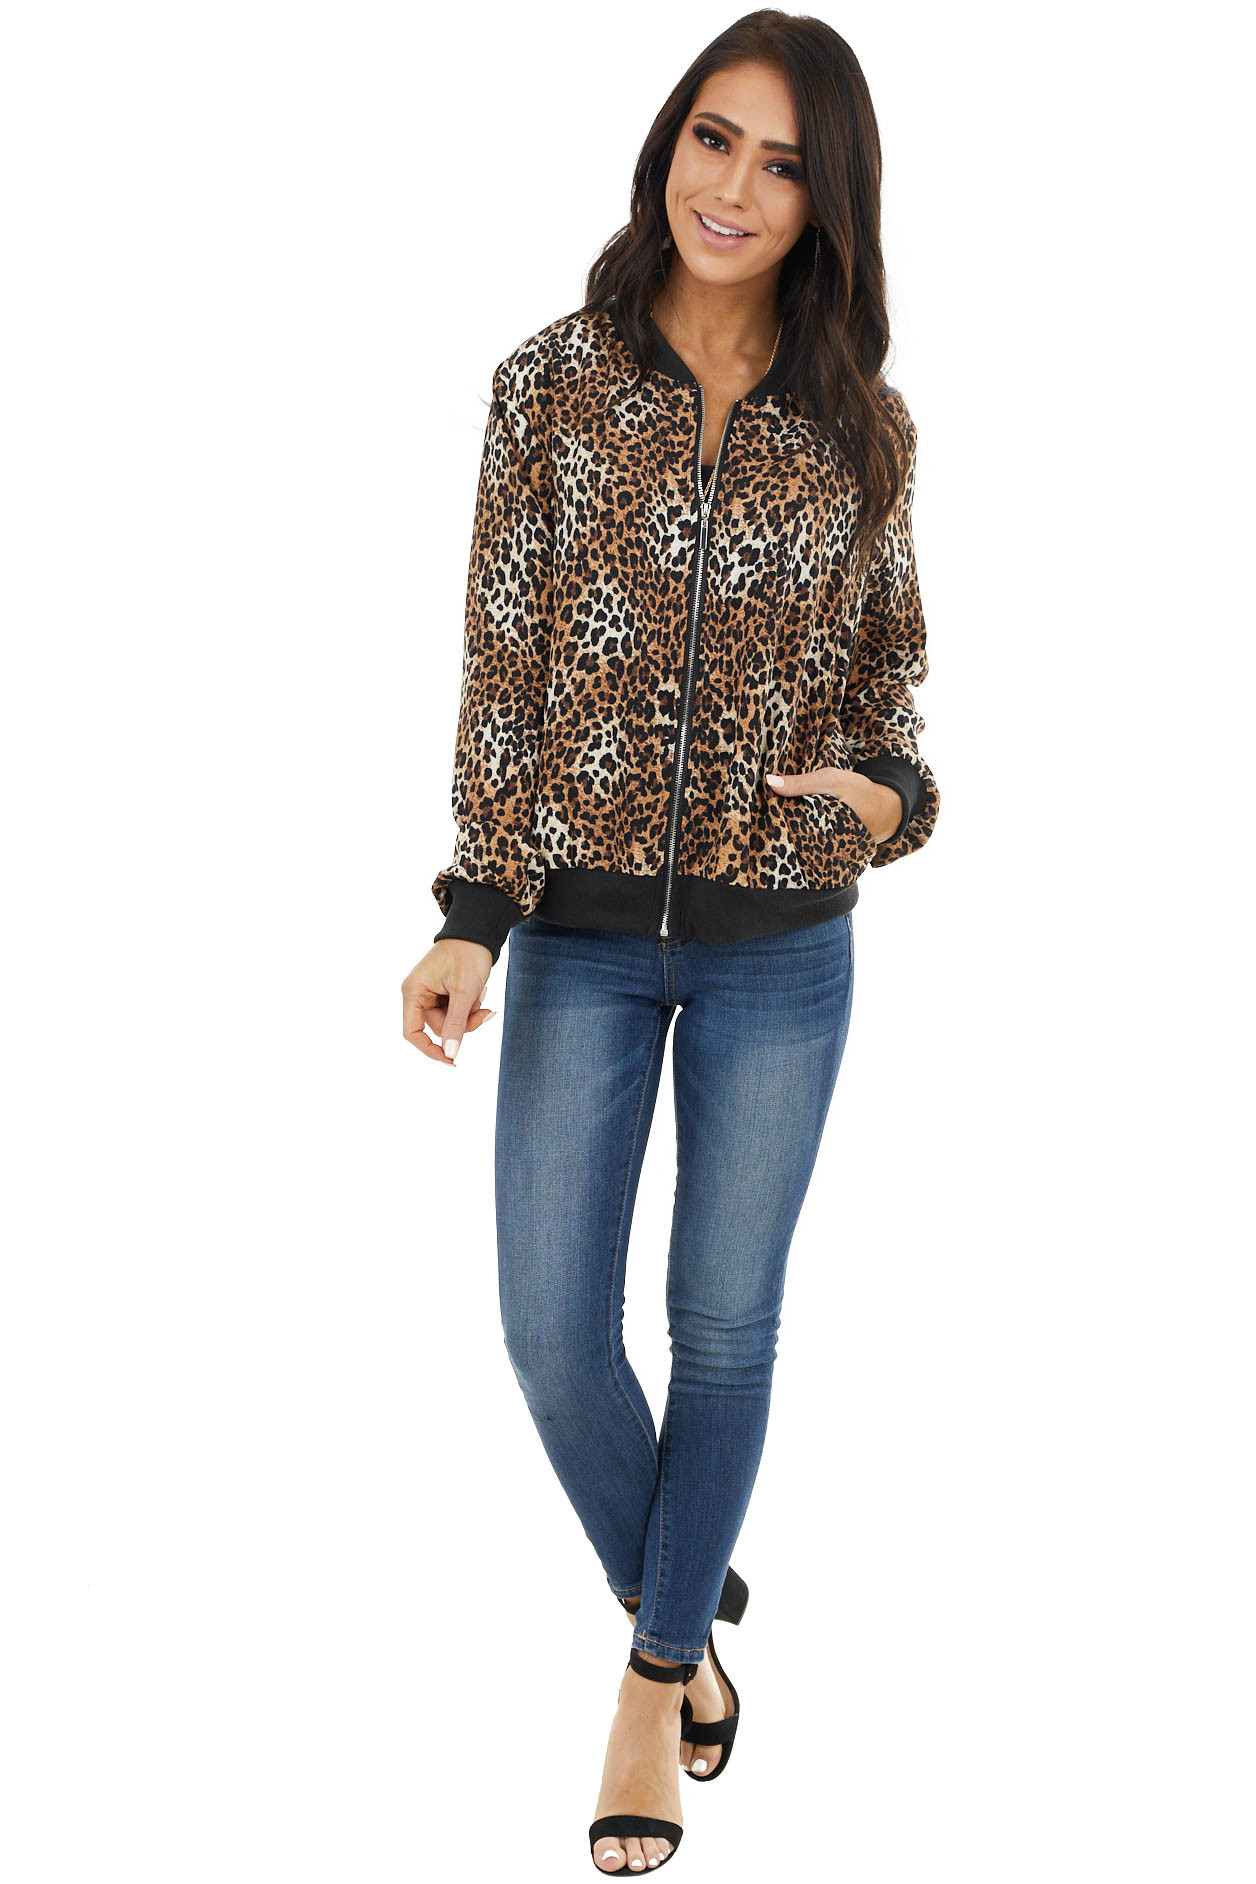 Camel Leopard Print Zip Up Jacket with Long Sleeves